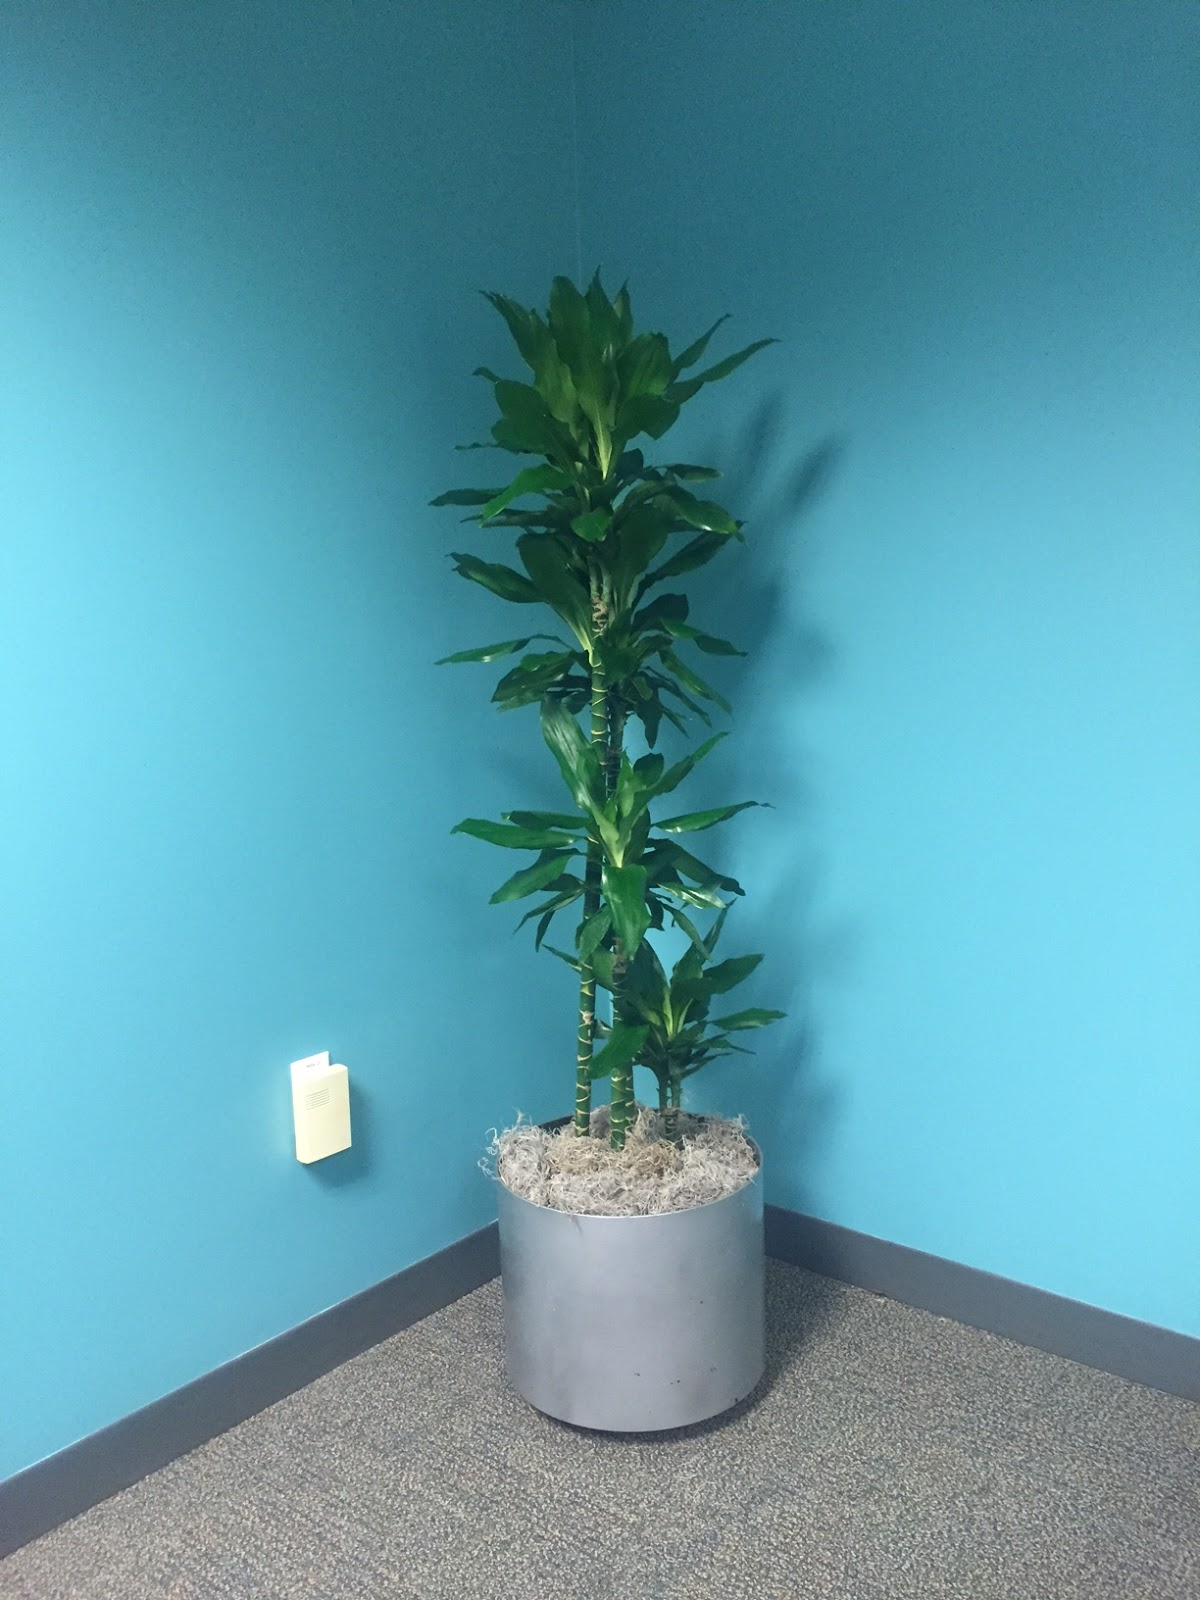 Chelmsford MA Office Plant Maintenance Care Design Pricing